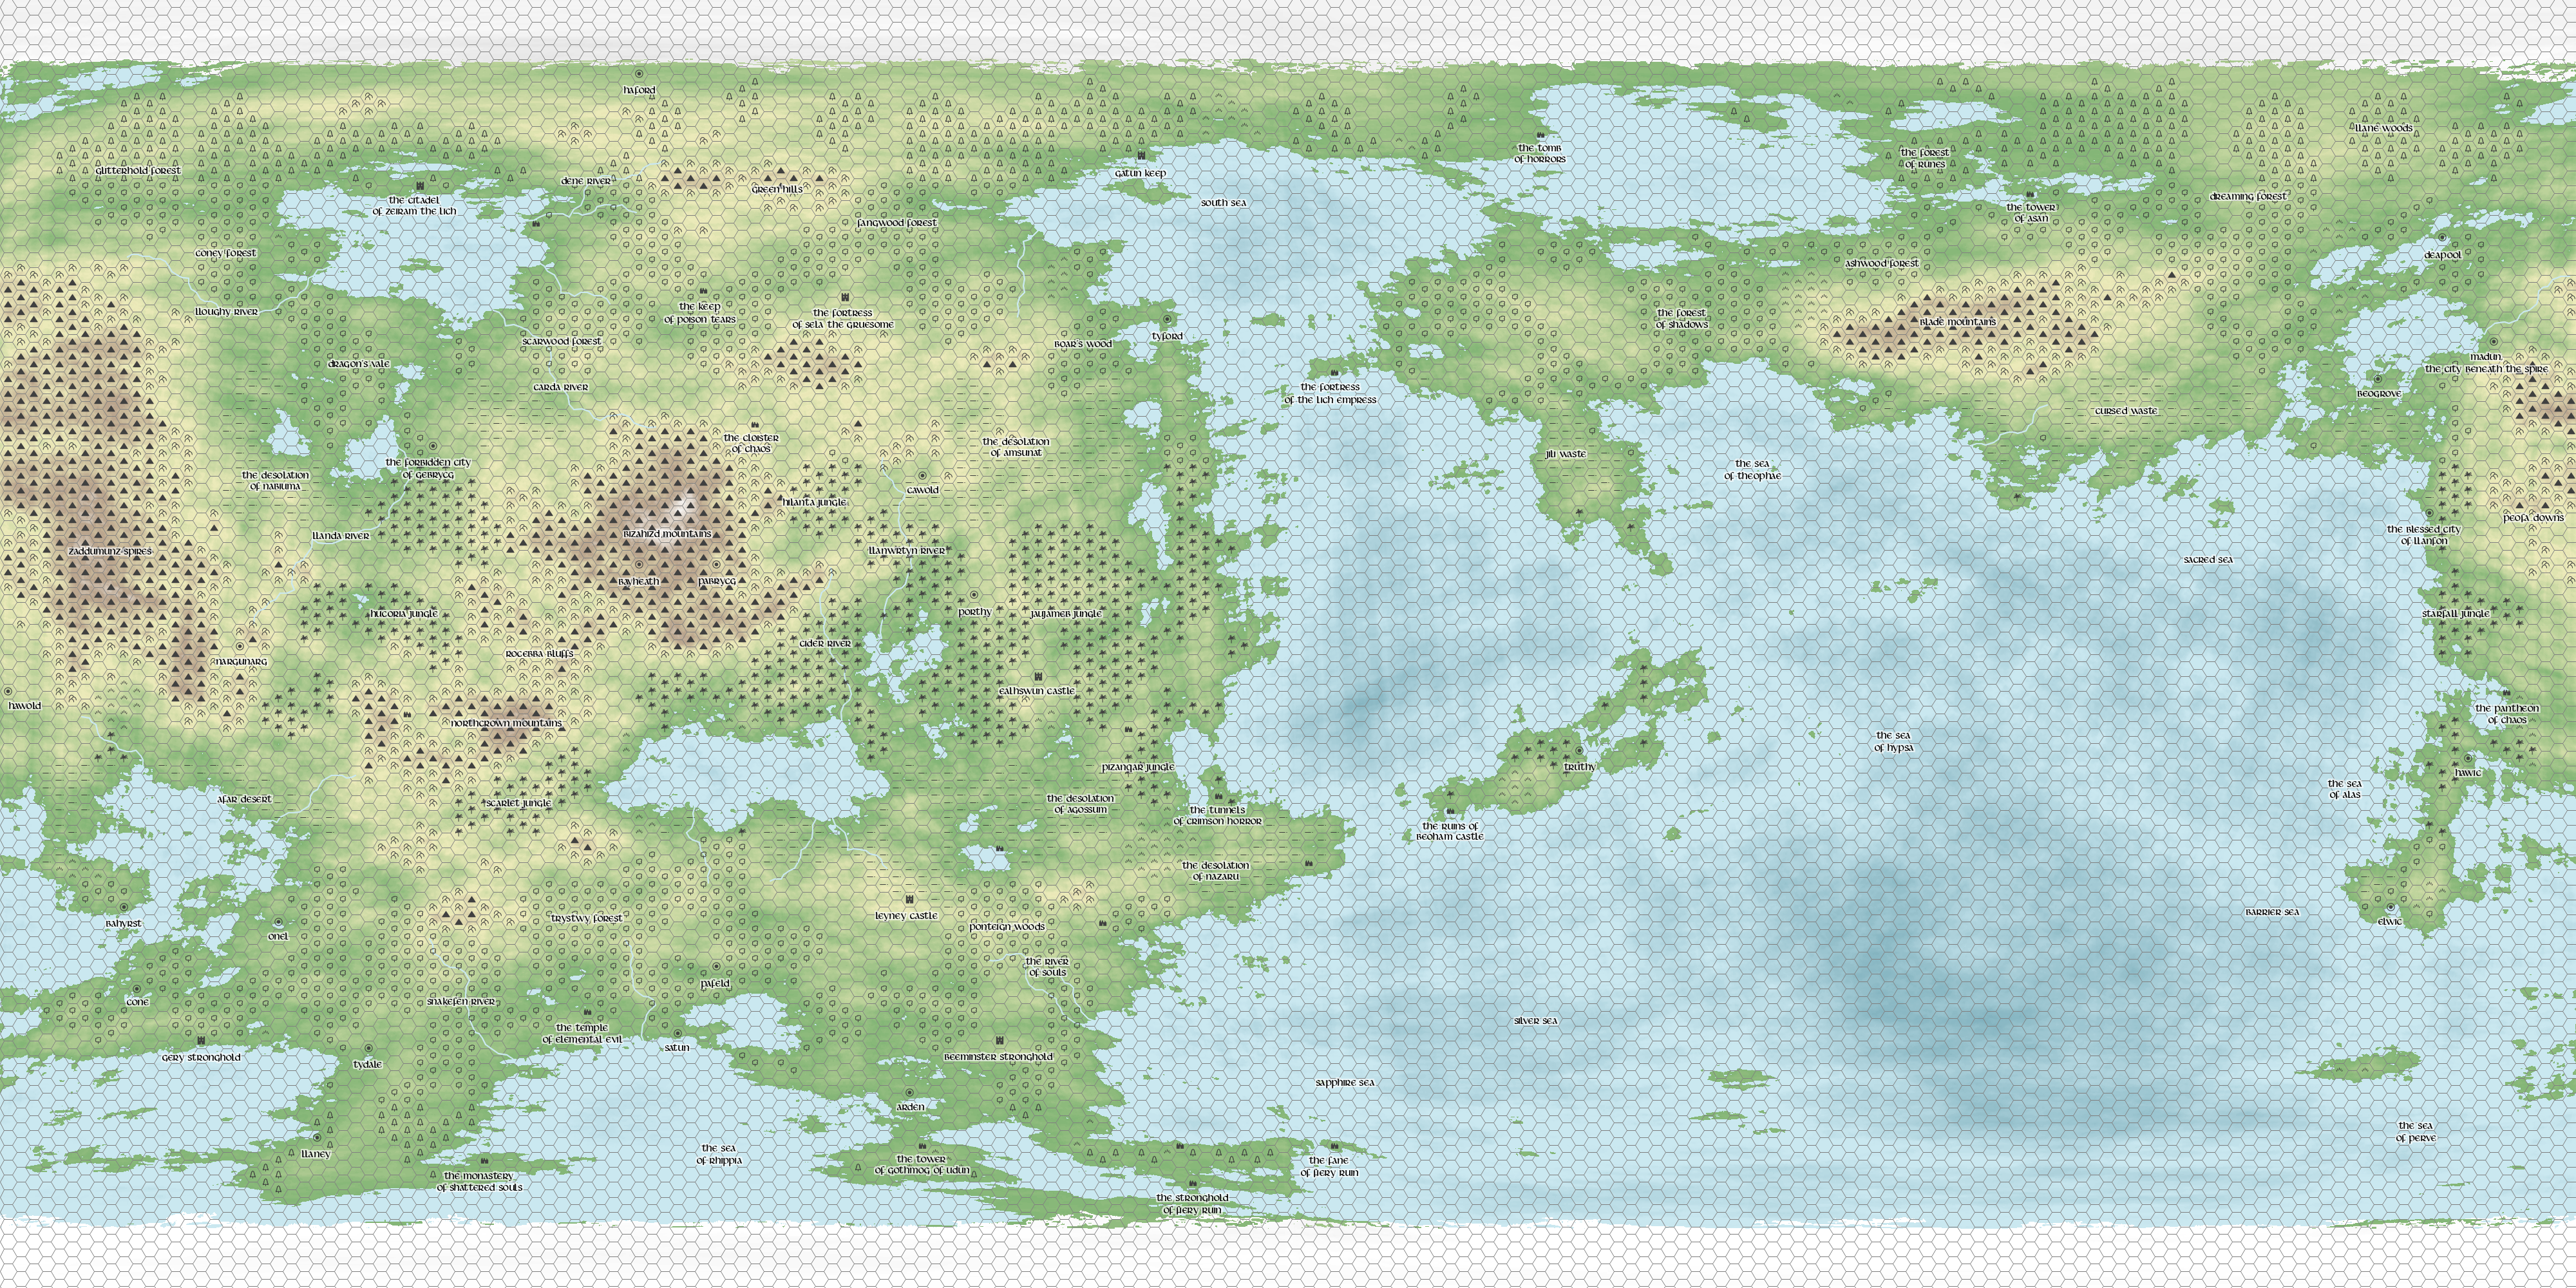 donjon; Fantasy World Generator | Game Maps in 2019 | Fantasy world on map design, map of london football stadiums, map indicator, map of road to success example, map dome light, map my neighborhood, map of chicago street names, map measuring tool, map map, map distance scale in miles, map of nigerian states and capitals, map of queensland, map downloader, map app, map of ancient roman world, map of an imaginary island, map of faerun 4th edition, map creator, map of world government types, map of different names of soft drinks,